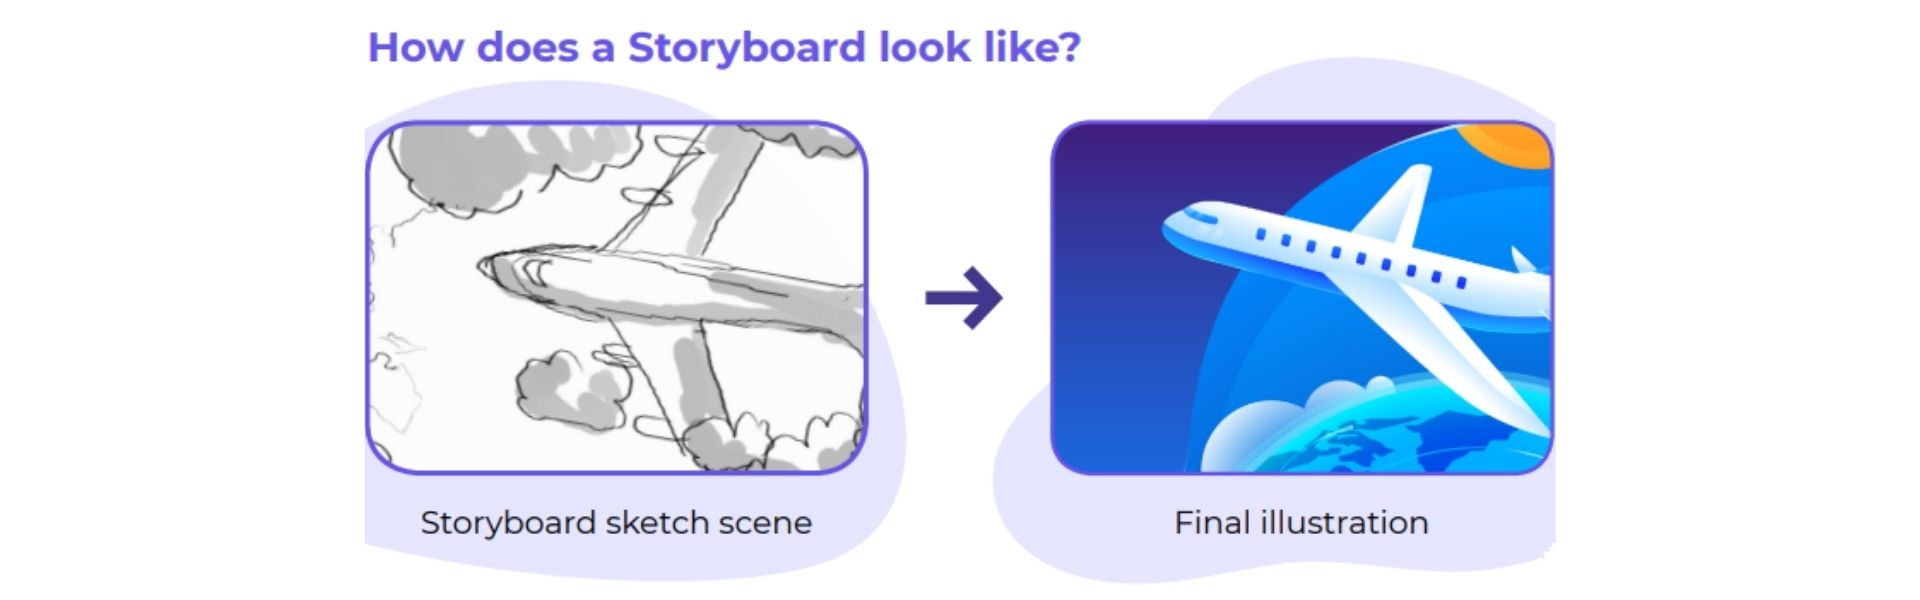 How does storyboard look like?